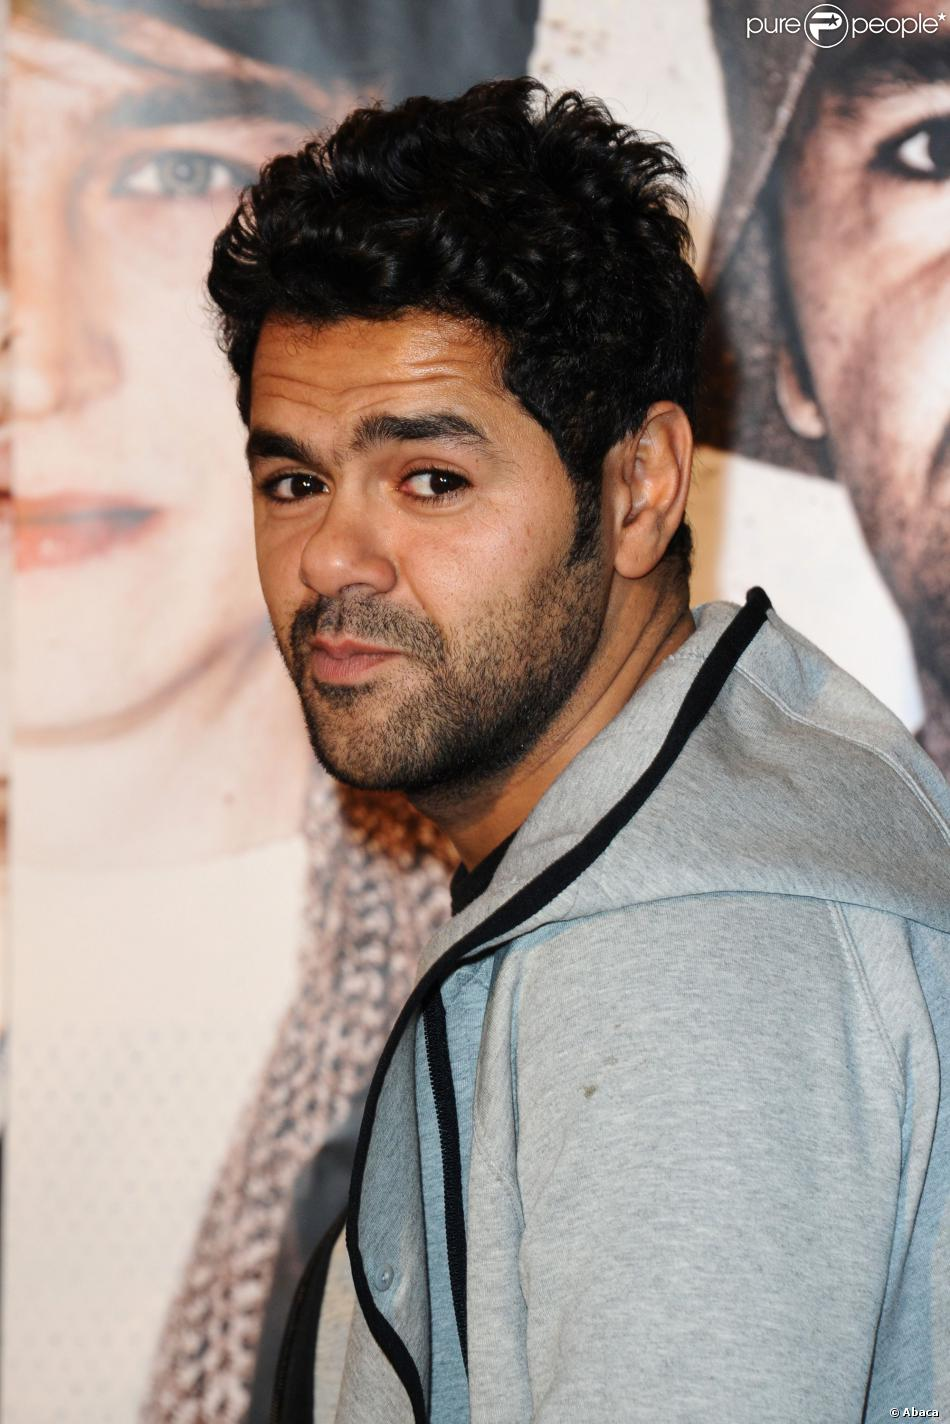 jamel debbouze alors on danse